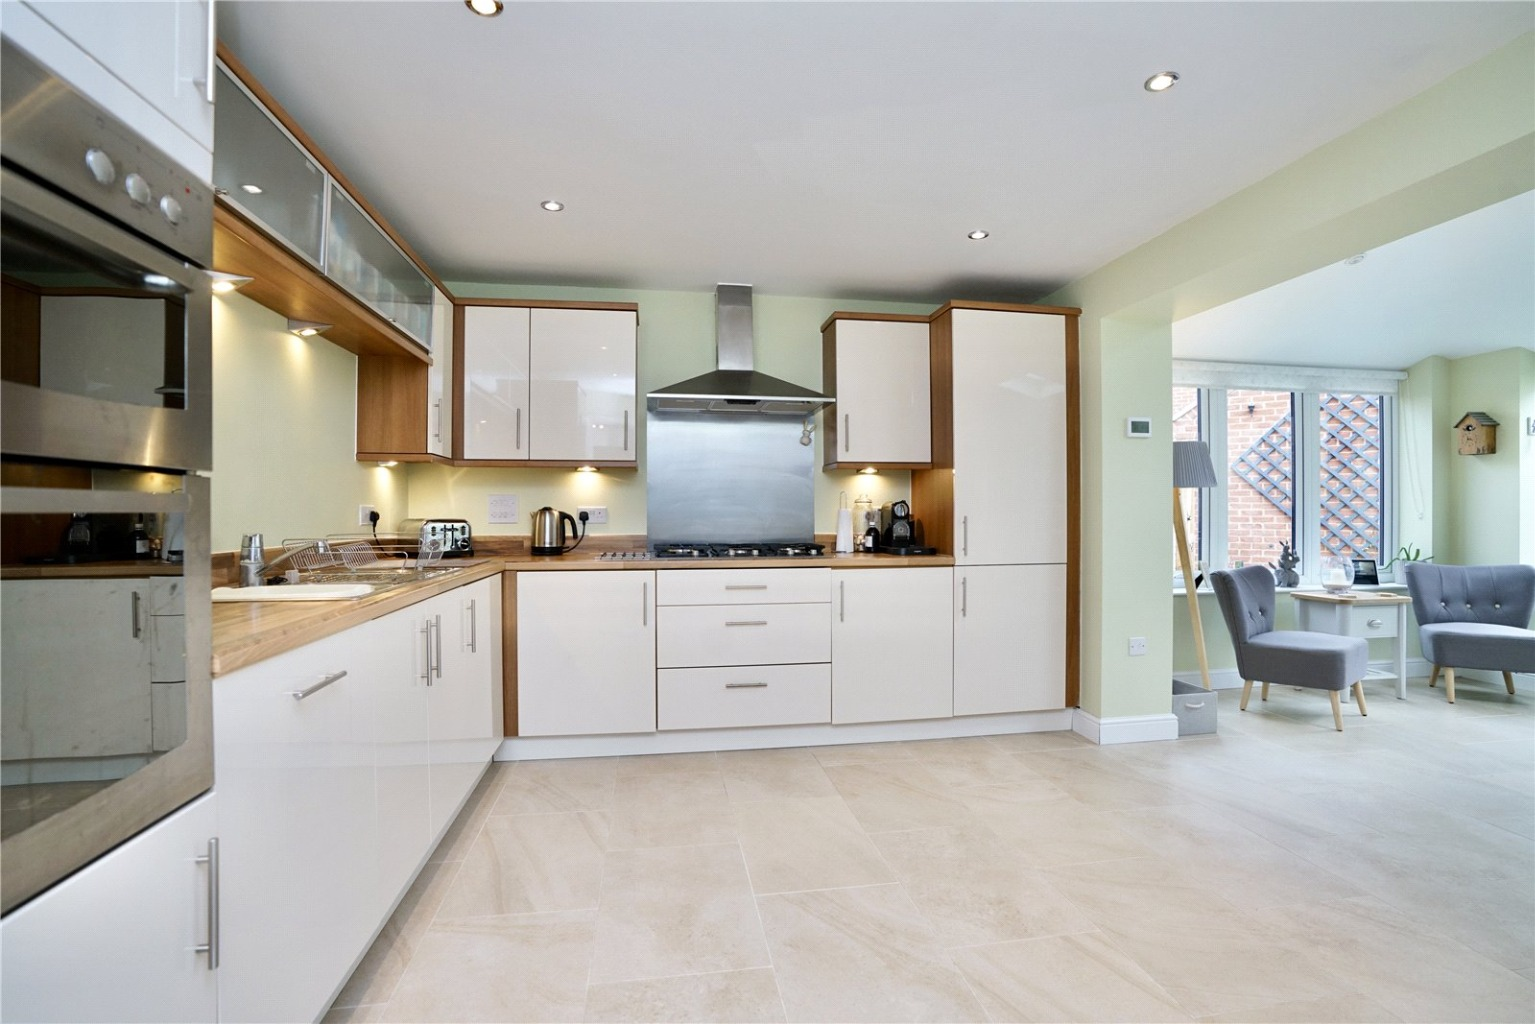 4 bed detached house for sale in Lannesbury Crescent, St. Neots 4